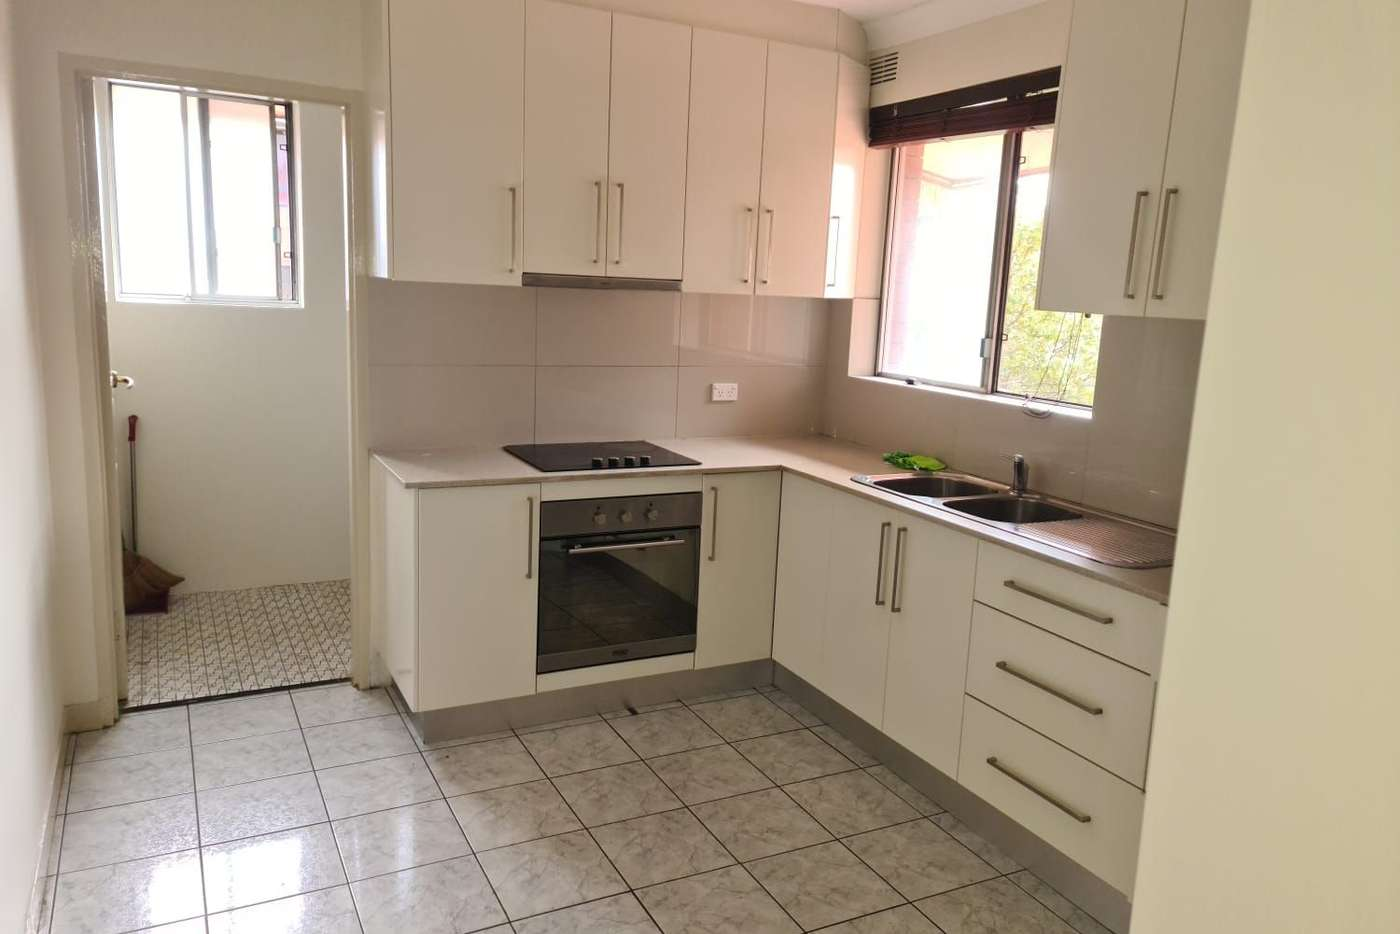 Sixth view of Homely unit listing, 6/19 Dudley Street, Punchbowl NSW 2196